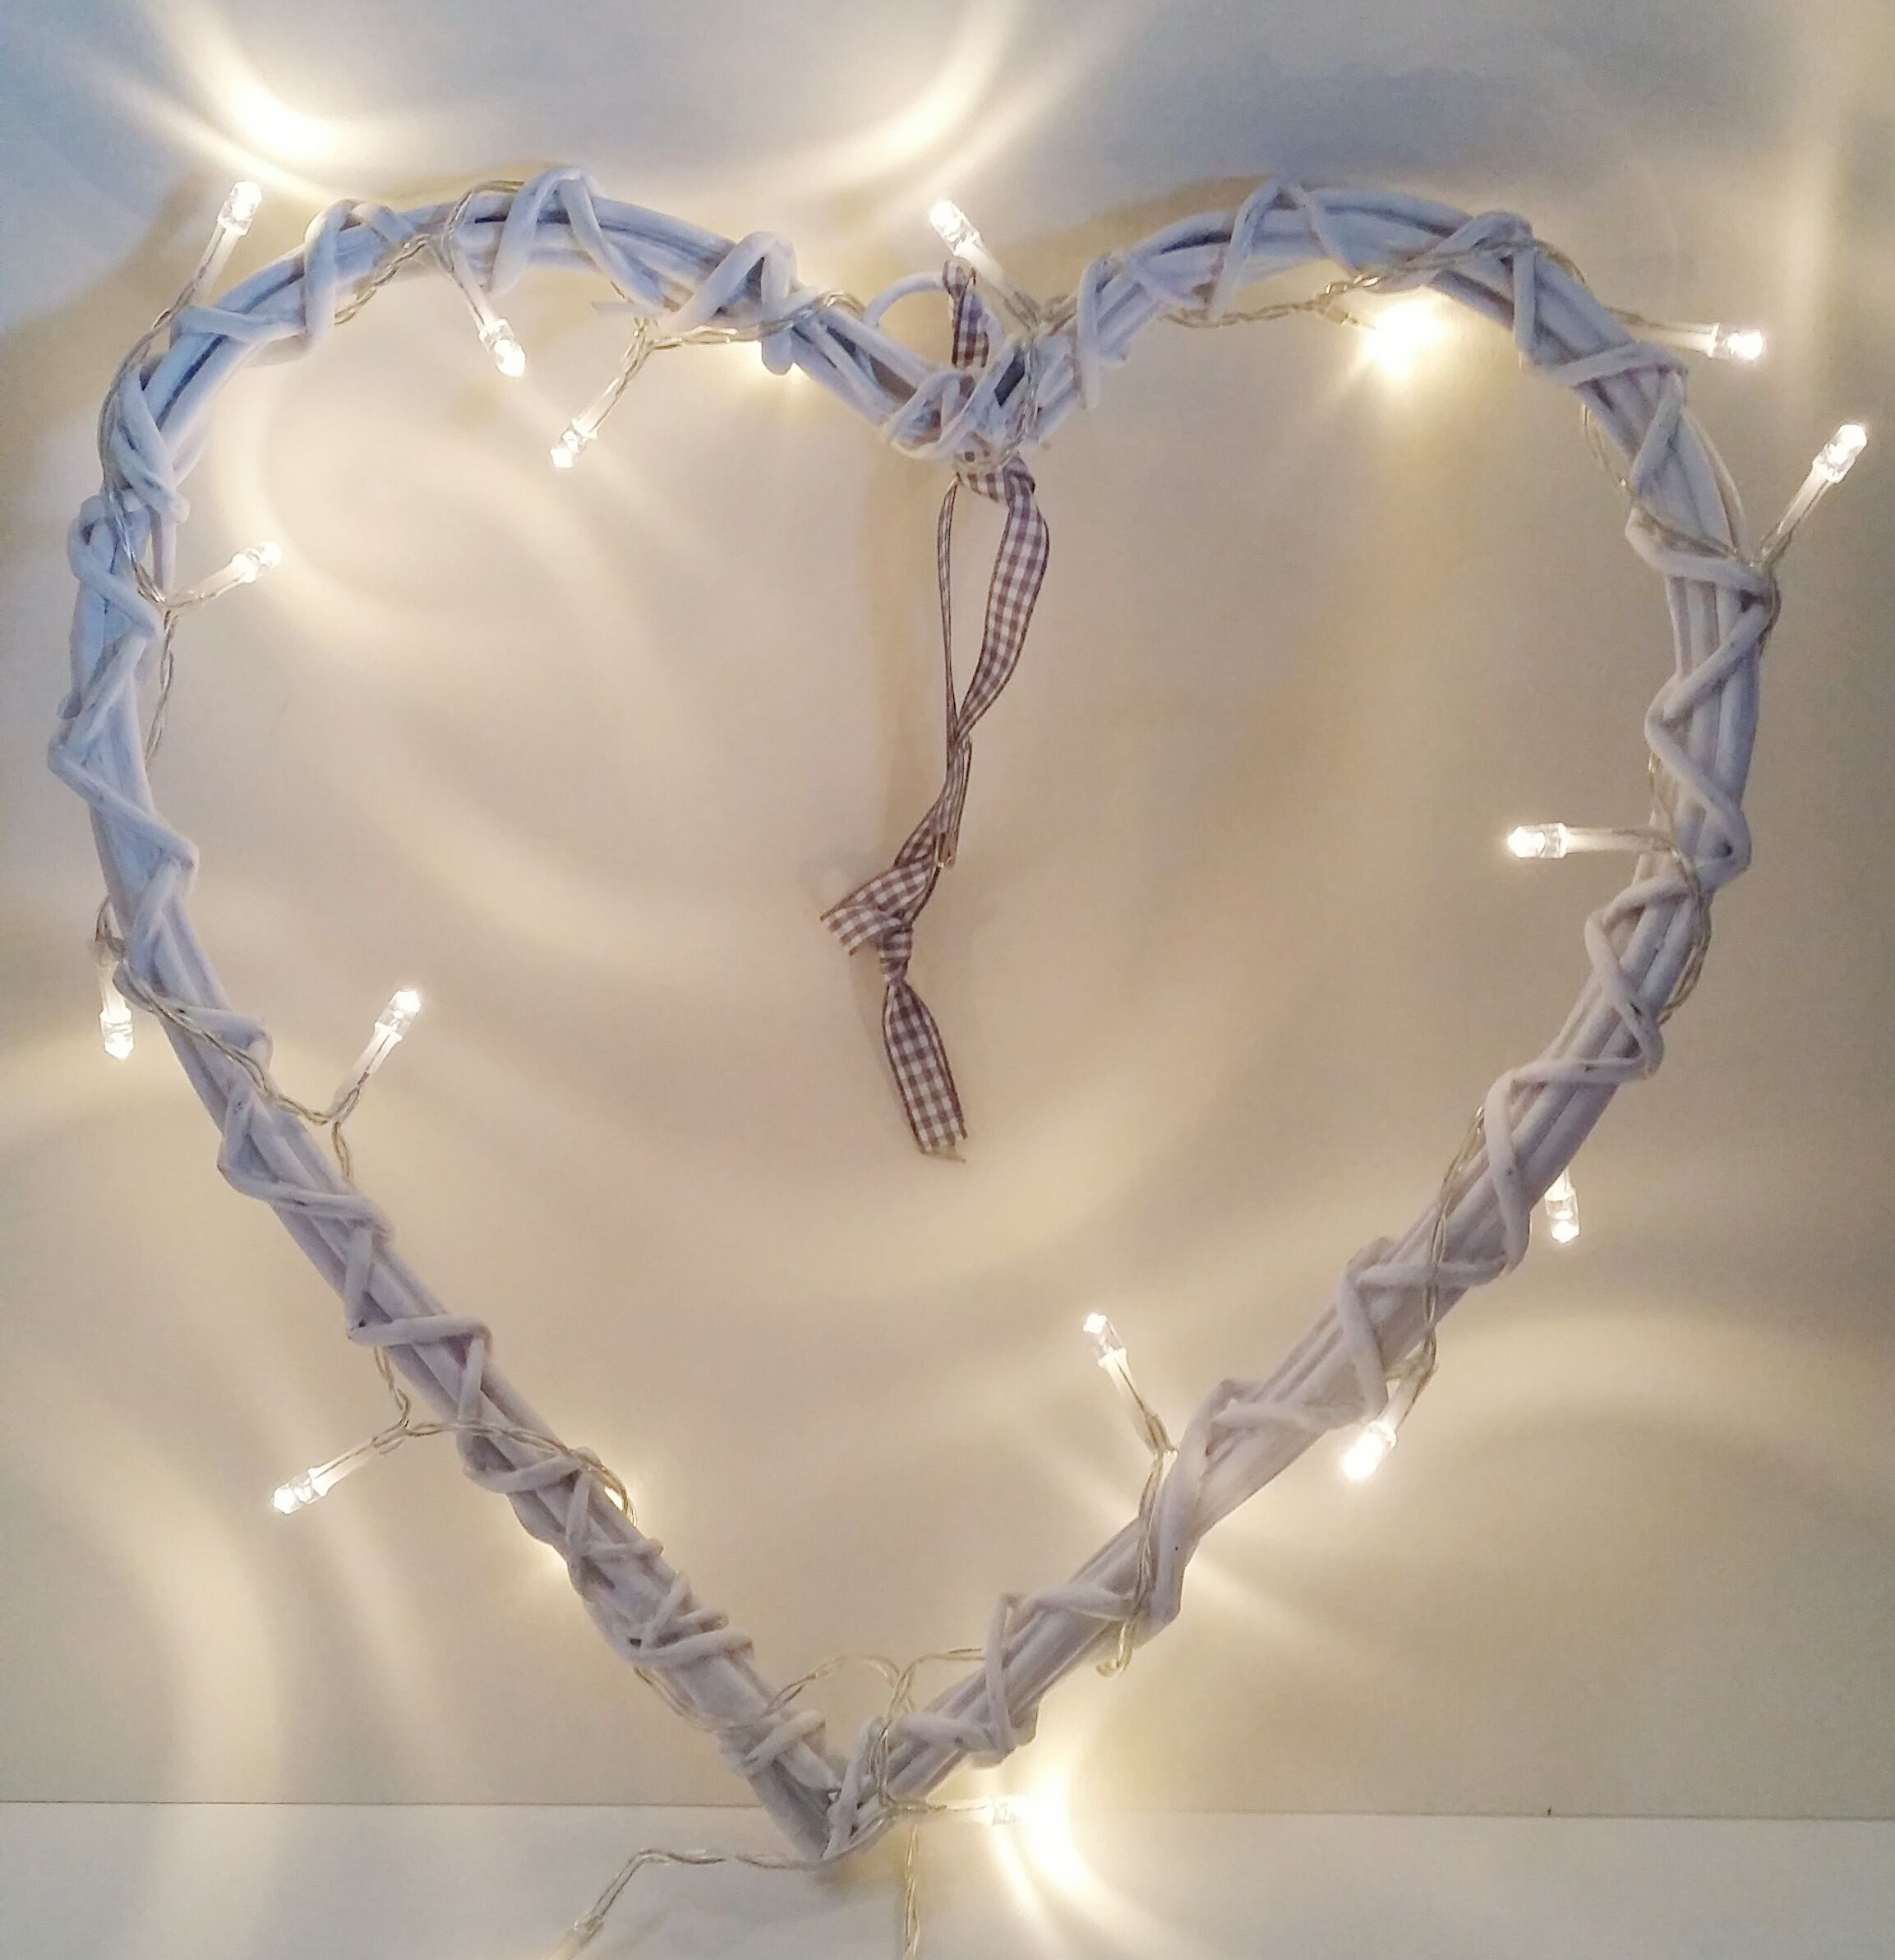 ***FOR HIRE*** Hire this cute light up heart for your top table or wedding cake table for that extra wow factor! Just £4